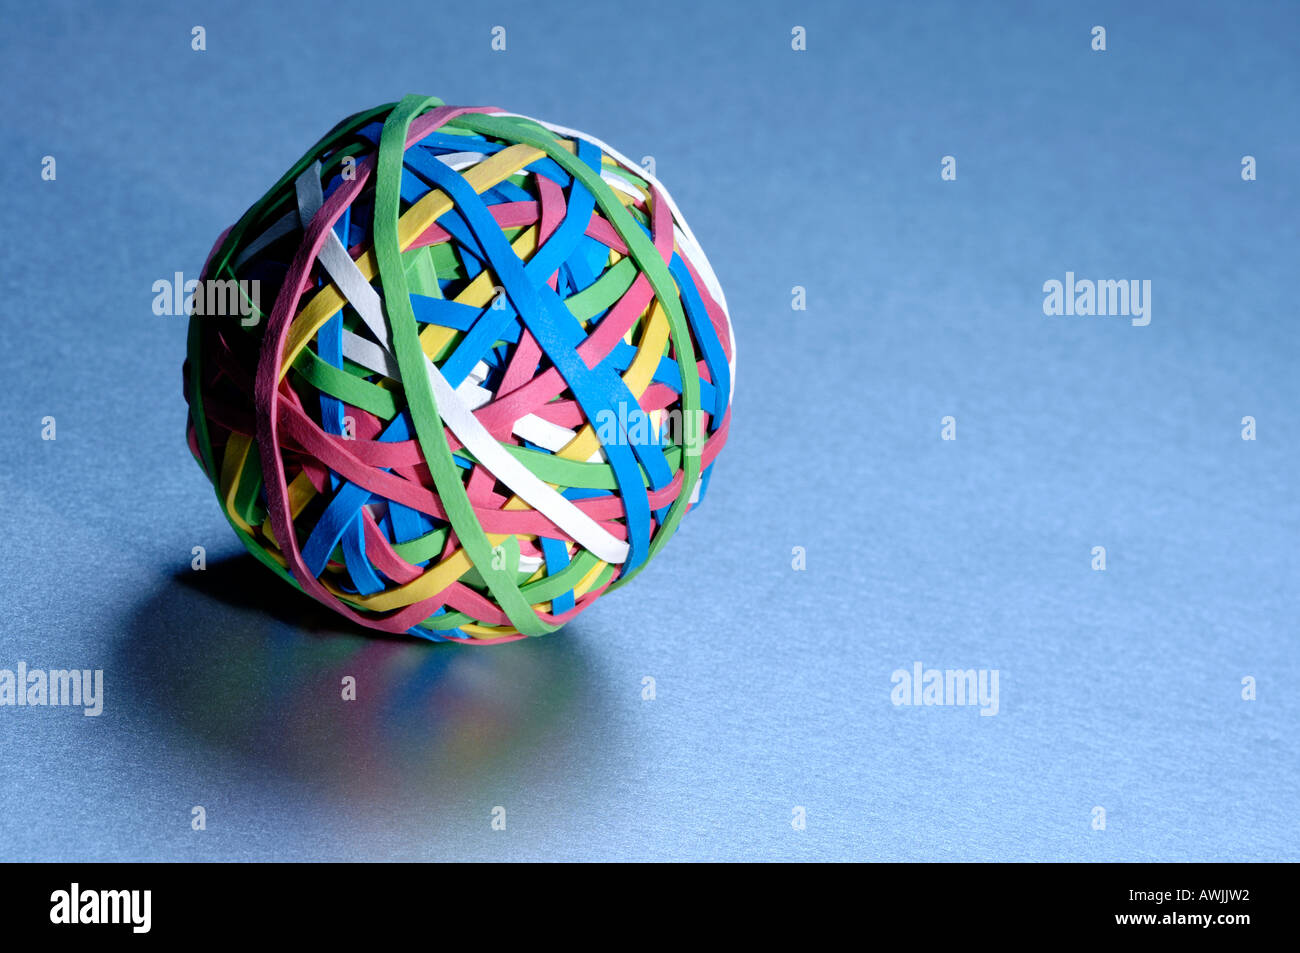 Ball of coloured rubber bands - Stock Image